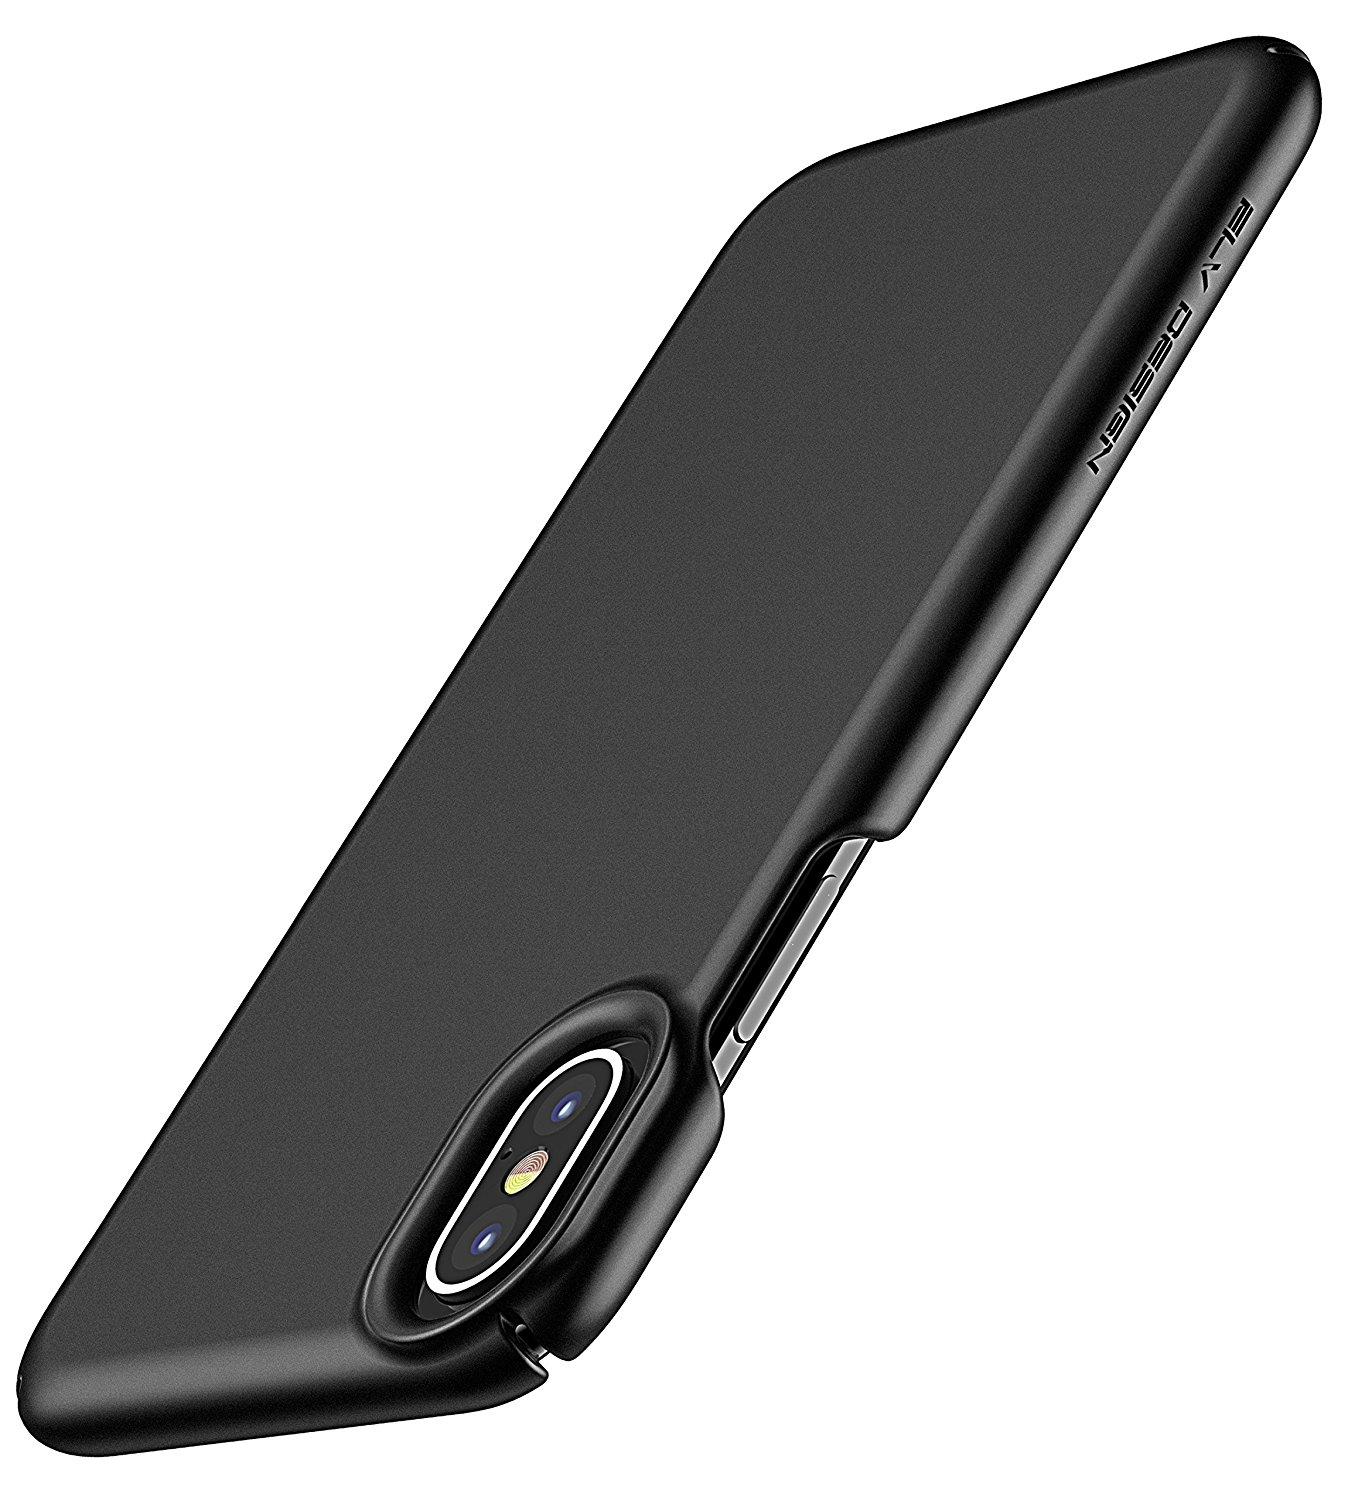 iPhone X Case, ELV iPhone X 10 Slim Premium Hard PC Snap-on Case Anti-Slip Matte Coating for Perfect Grip Hybrid with Inbuilt Microfiber Case Cover for Apple iPhone X / iPhone 10 (BLACK)